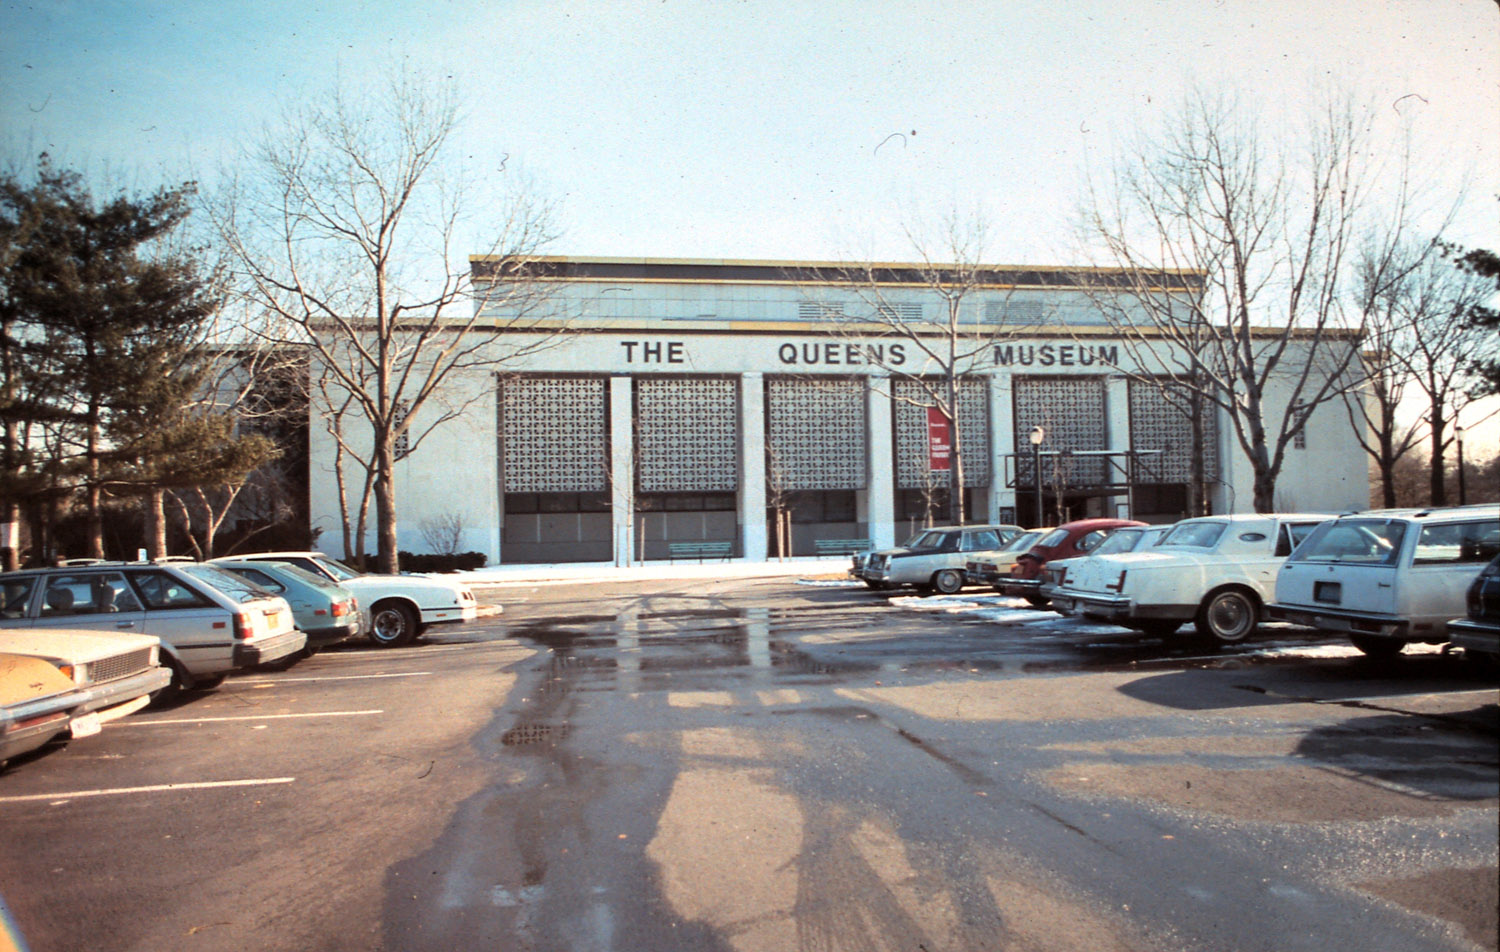 The main entrance to the Queens Museum as seen from the parking lot to the north, 1980s